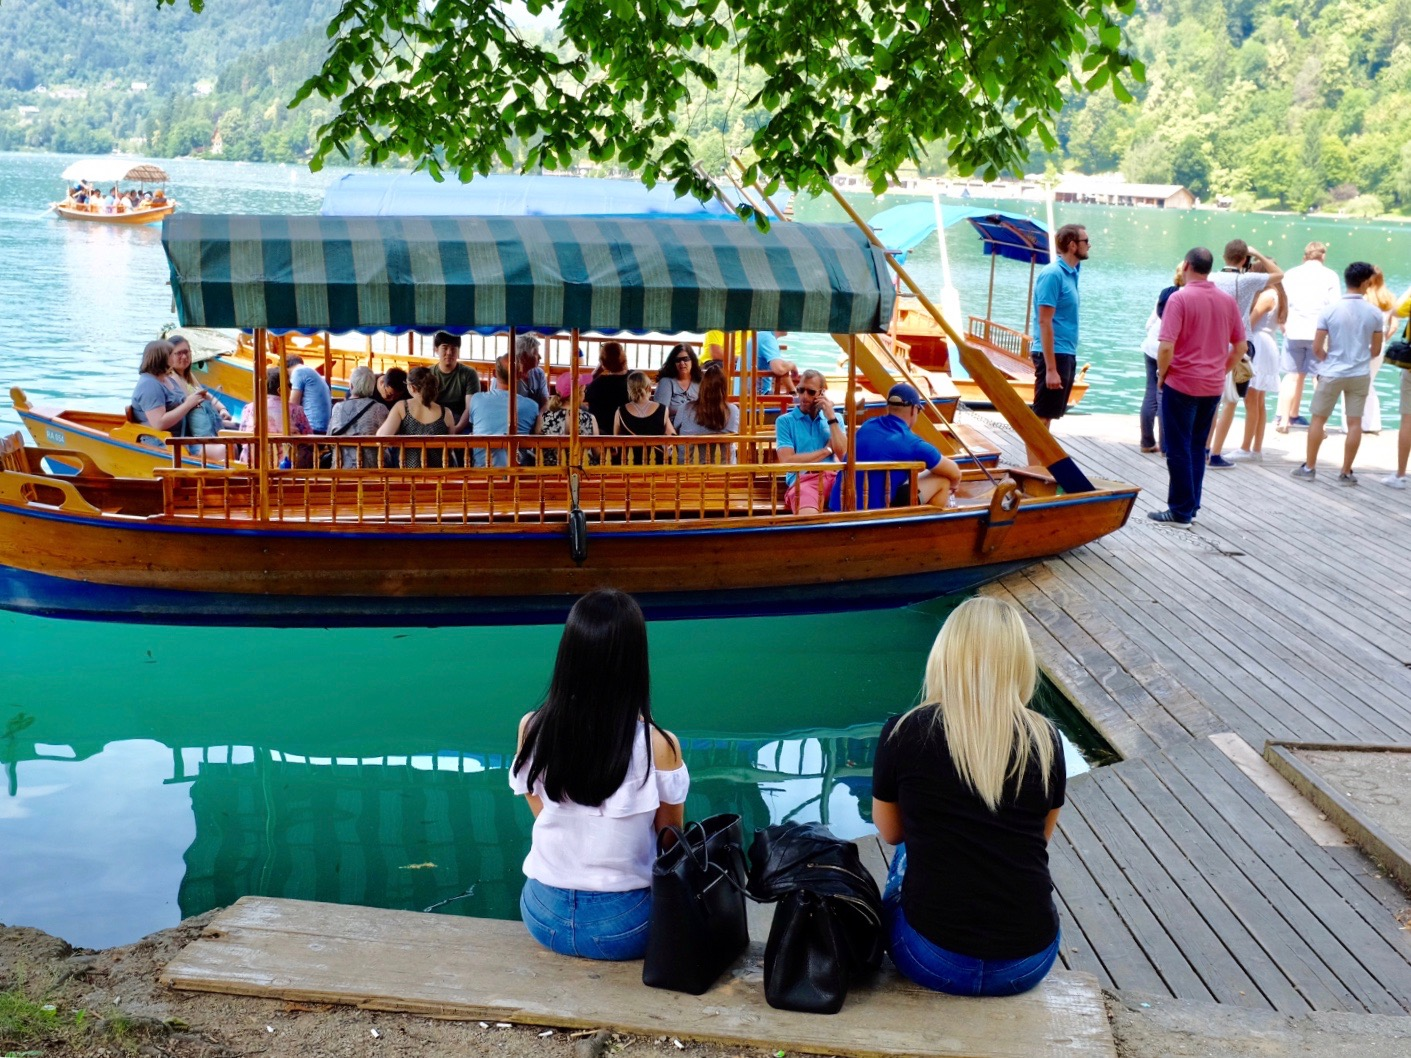 People watch a gondola boat of people launch at Lake Bled, Slovenia.